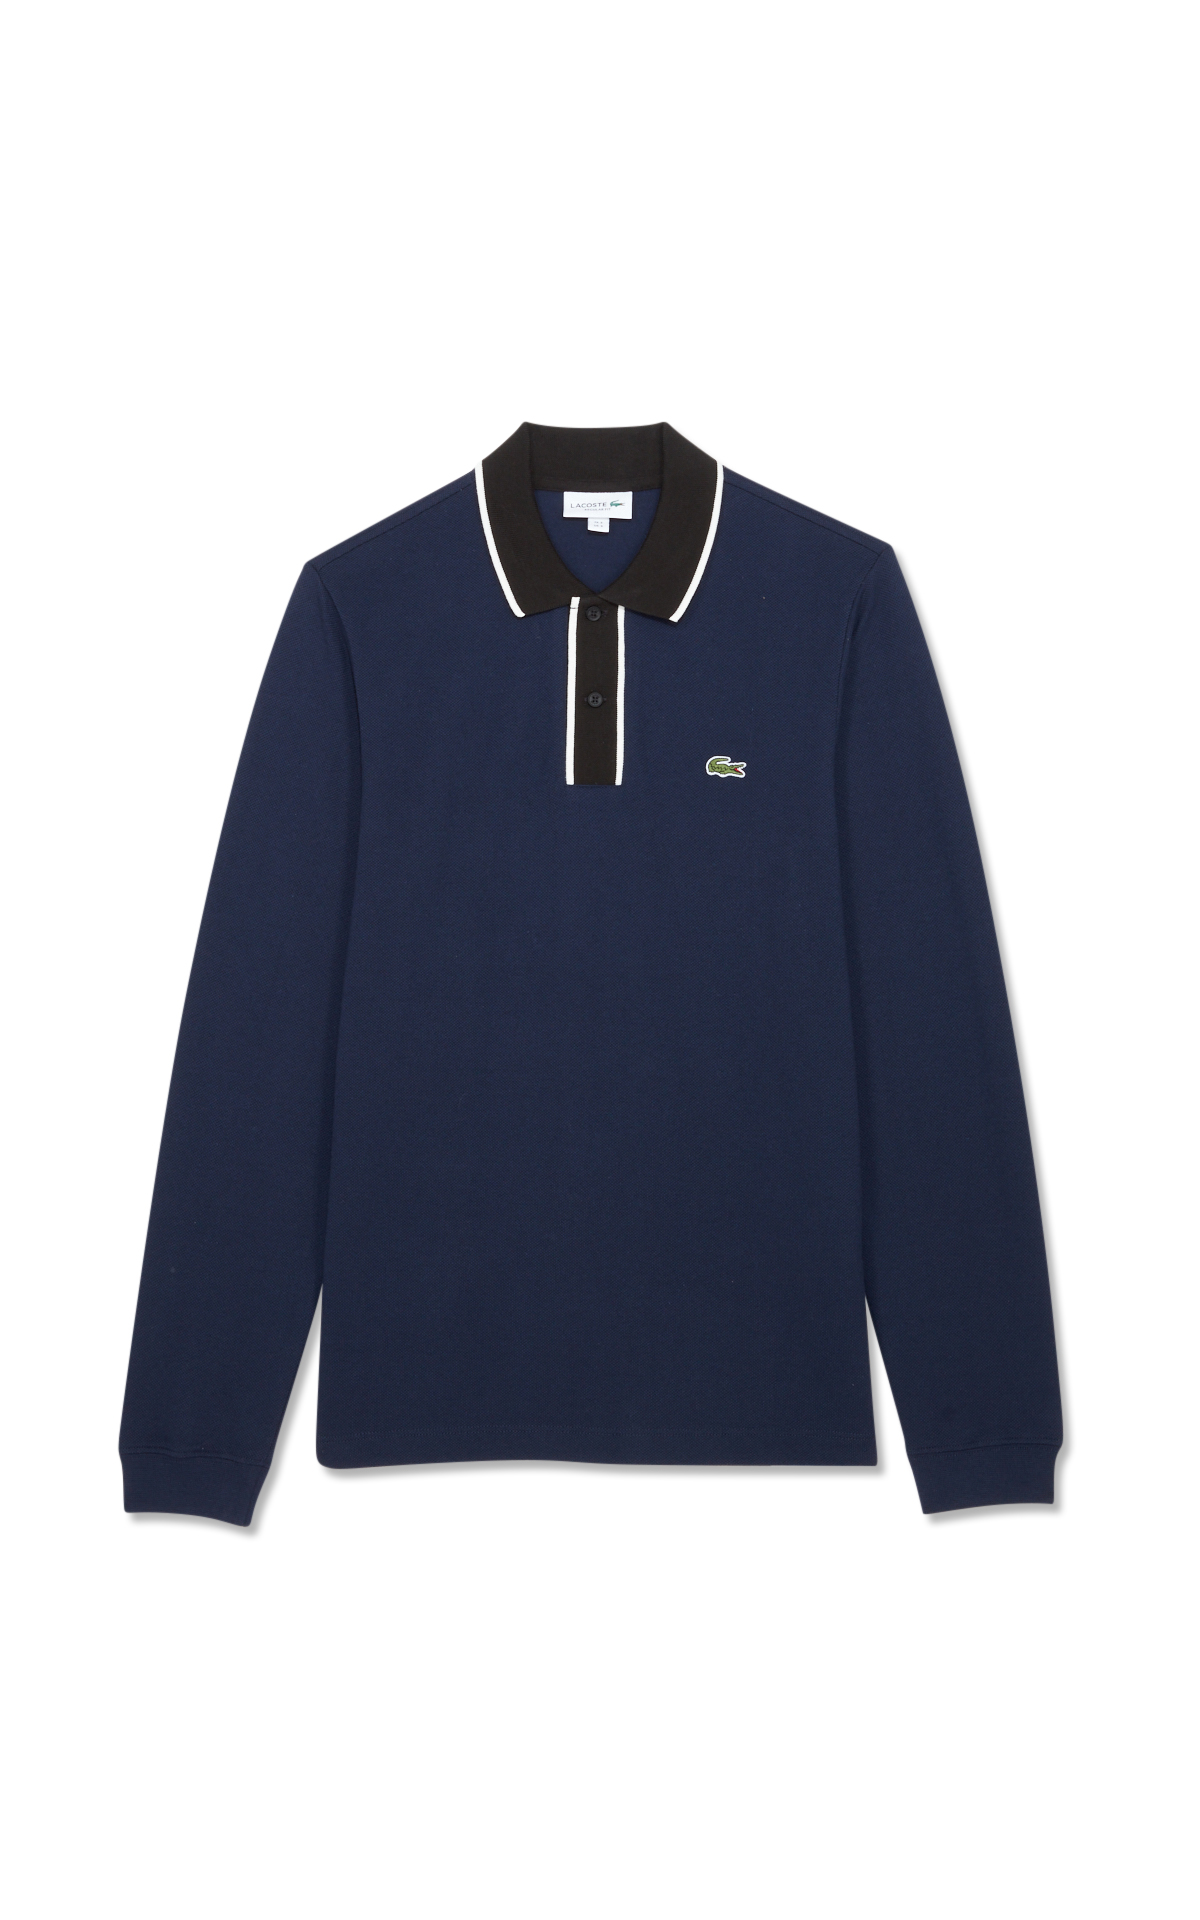 Lacoste Black and blue polo shirt*